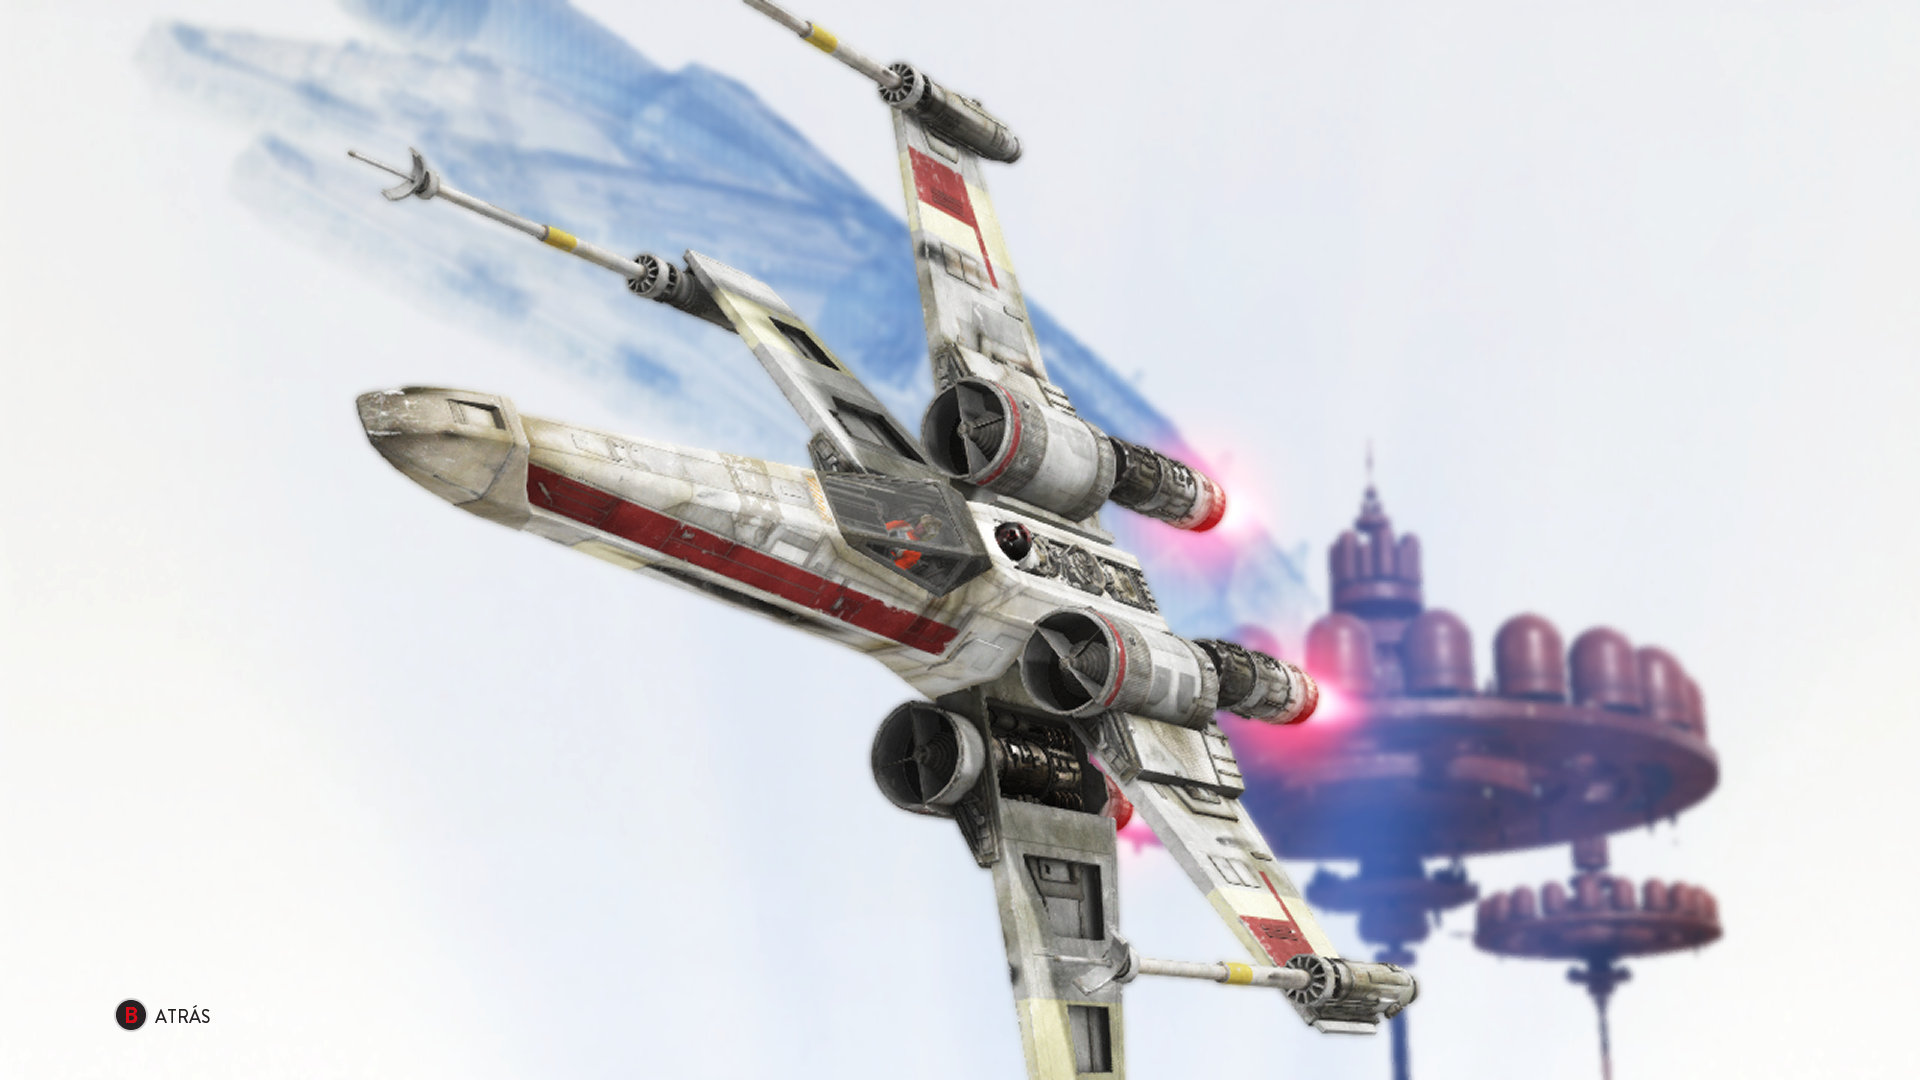 General 1920x1080 Star Wars Star Wars: Battlefront Bespin X-wing Star Wars Ships video games PC gaming science fiction